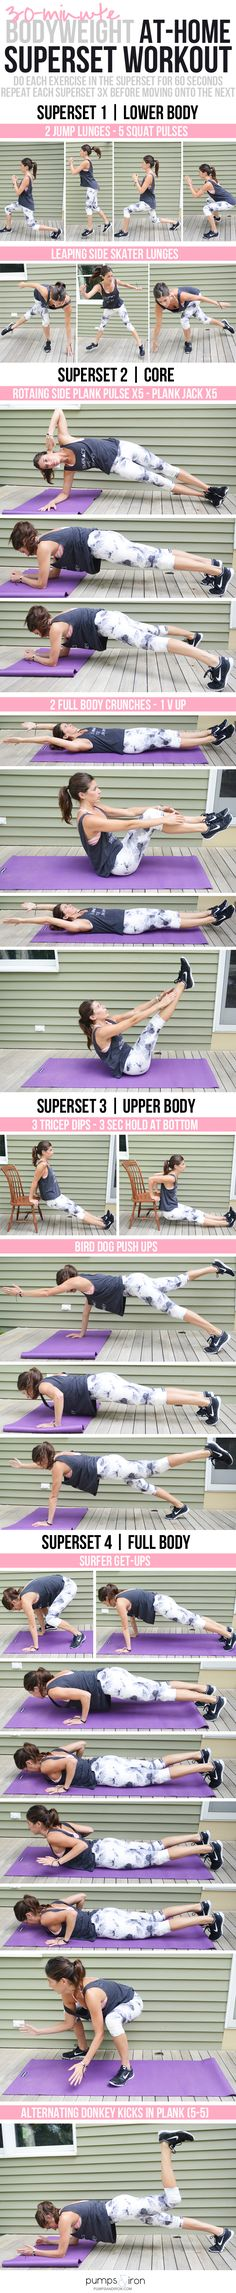 30-Minute At-Home Bodyweight Superset Workout - each superset works a different muscle group                                                                                                                                                     More